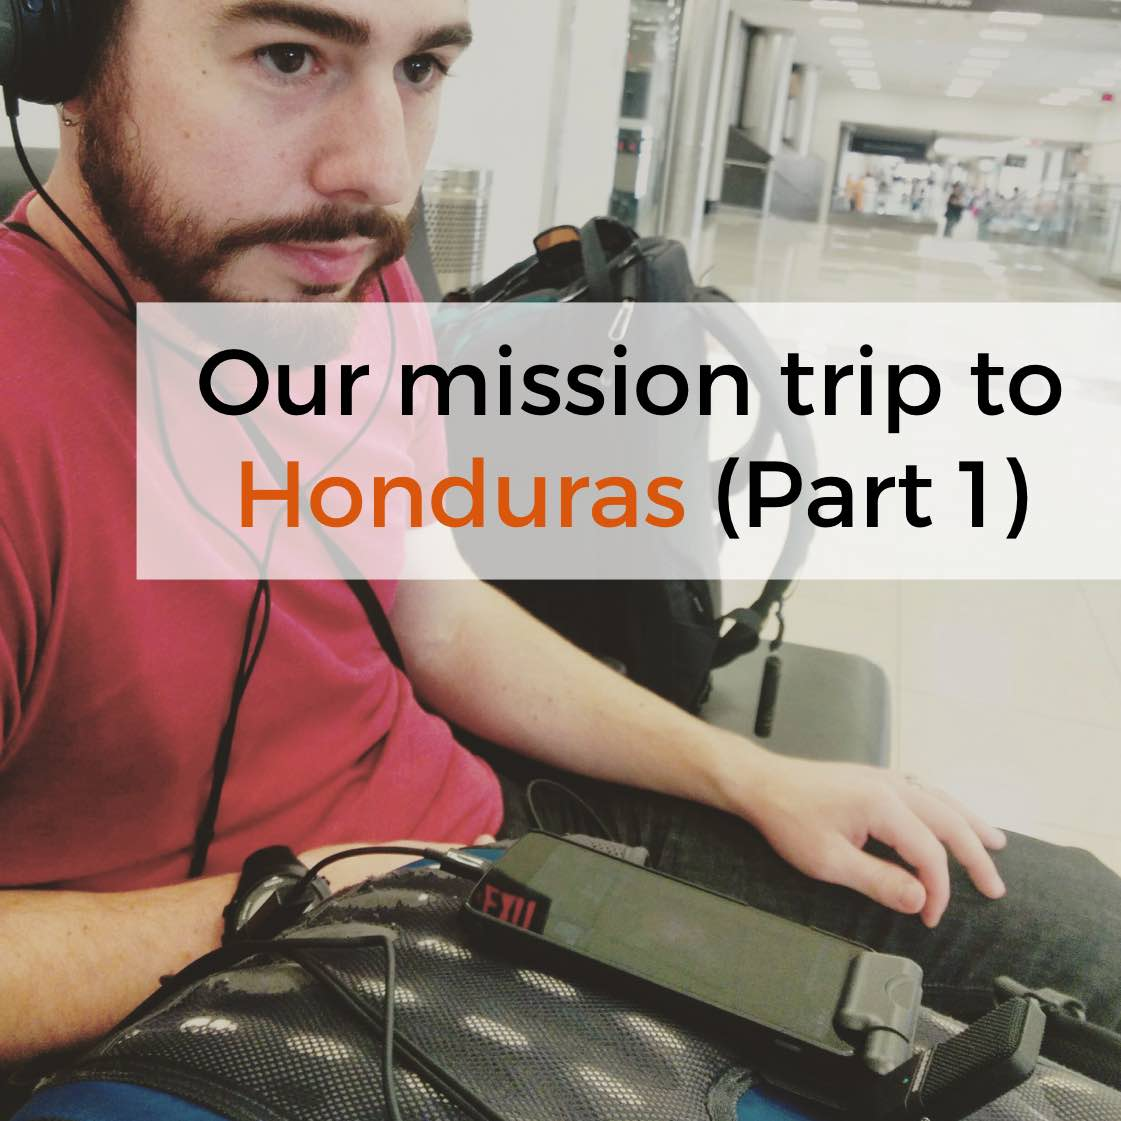 Episode 32: Our mission trip to Honduras (Part 1)